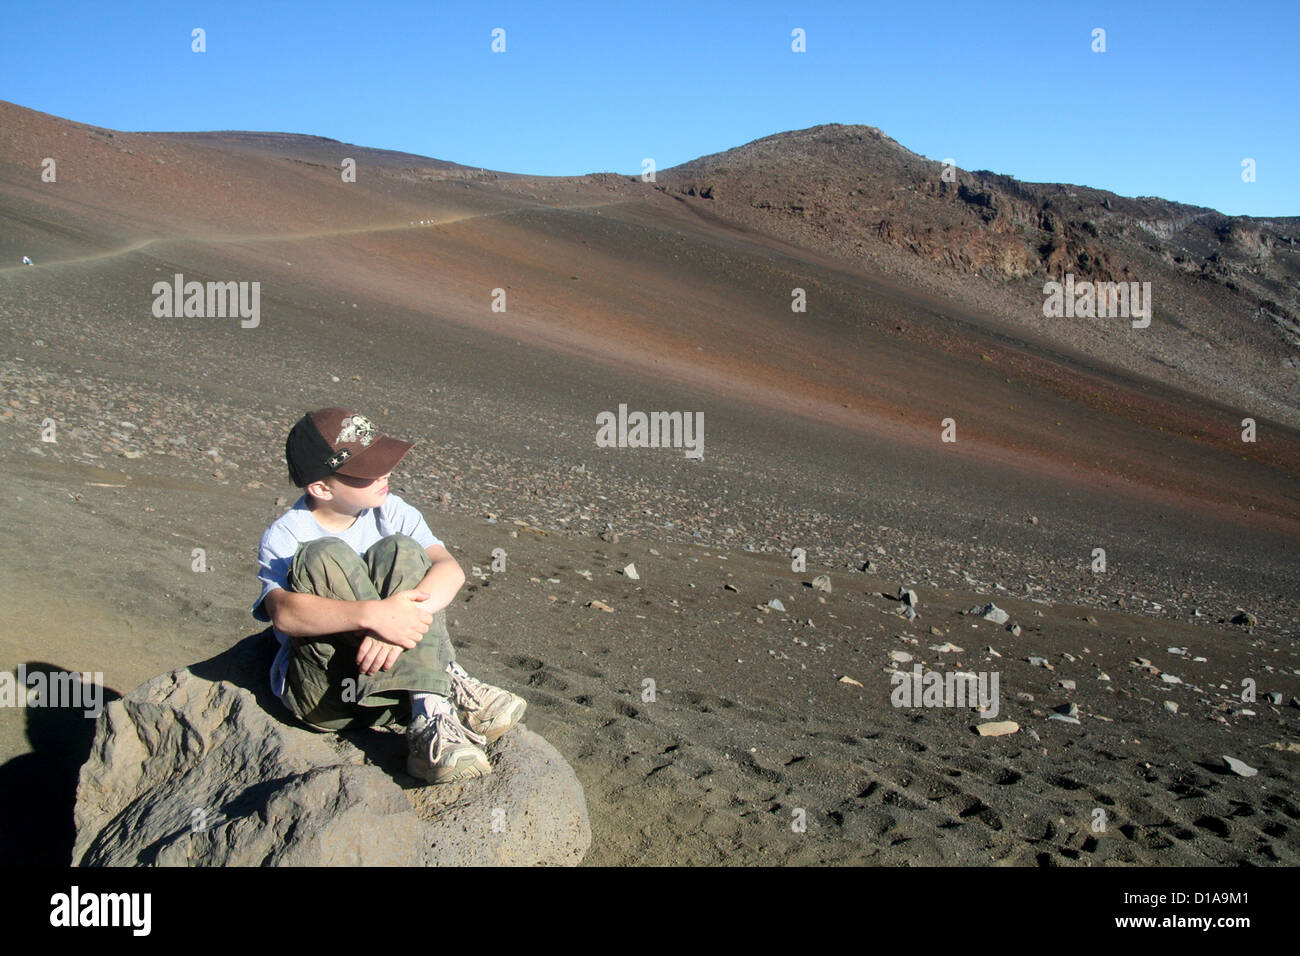 Boy taking in the view of Haleakala crater, Maui, Hawaii Stock Photo